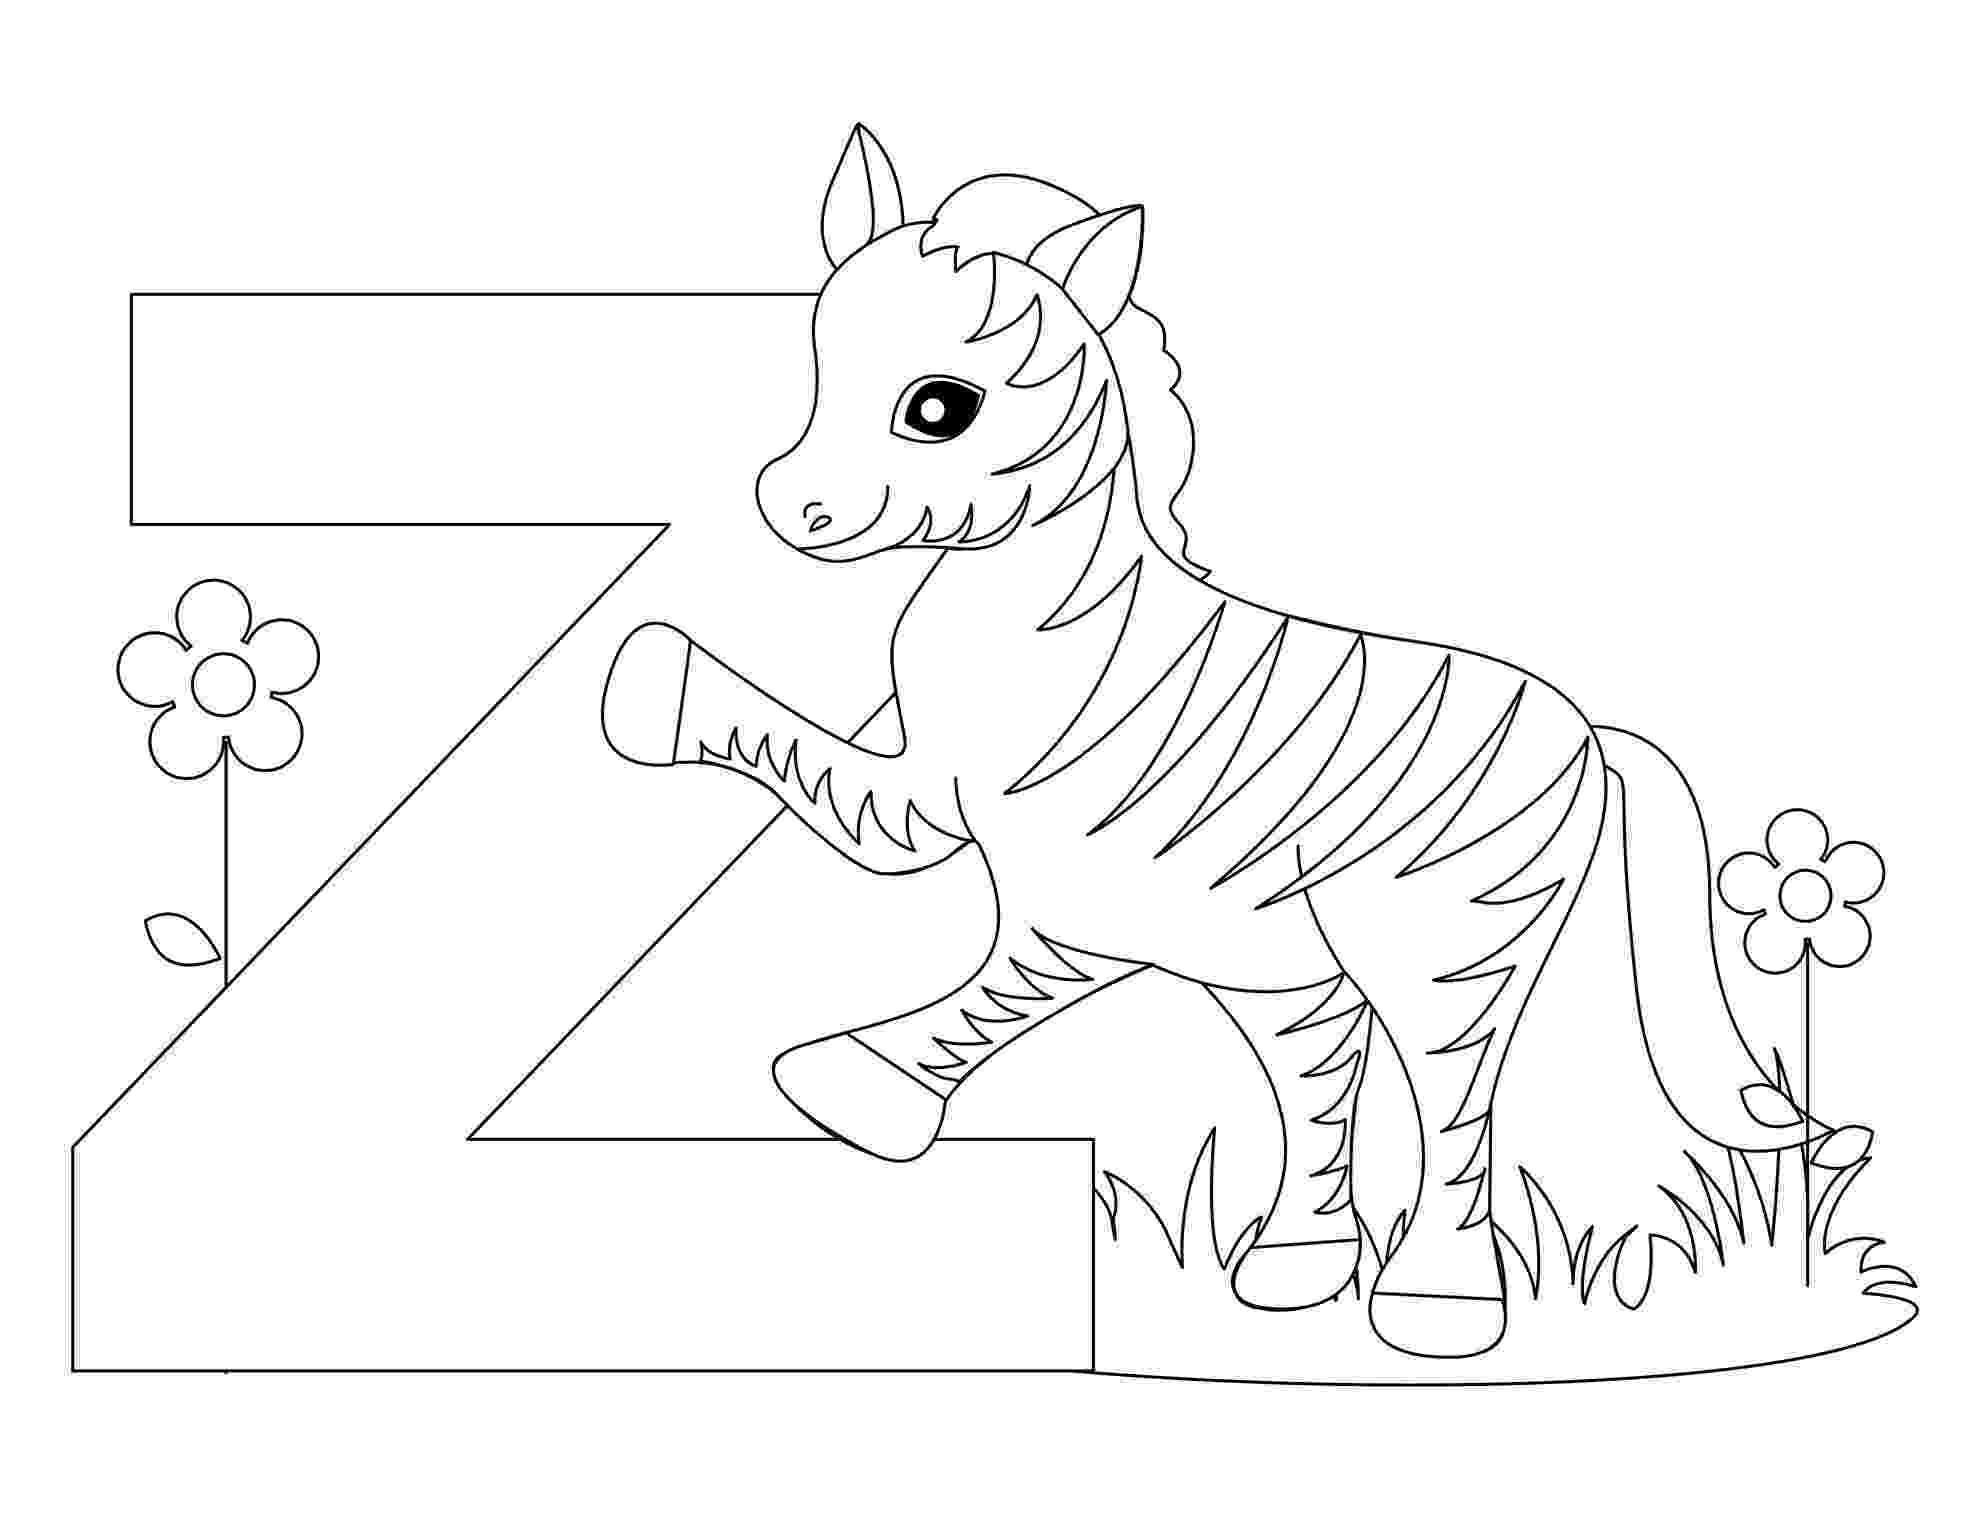 coloring pictures of alphabet letters free printable alphabet coloring pages for kids best pictures coloring letters of alphabet